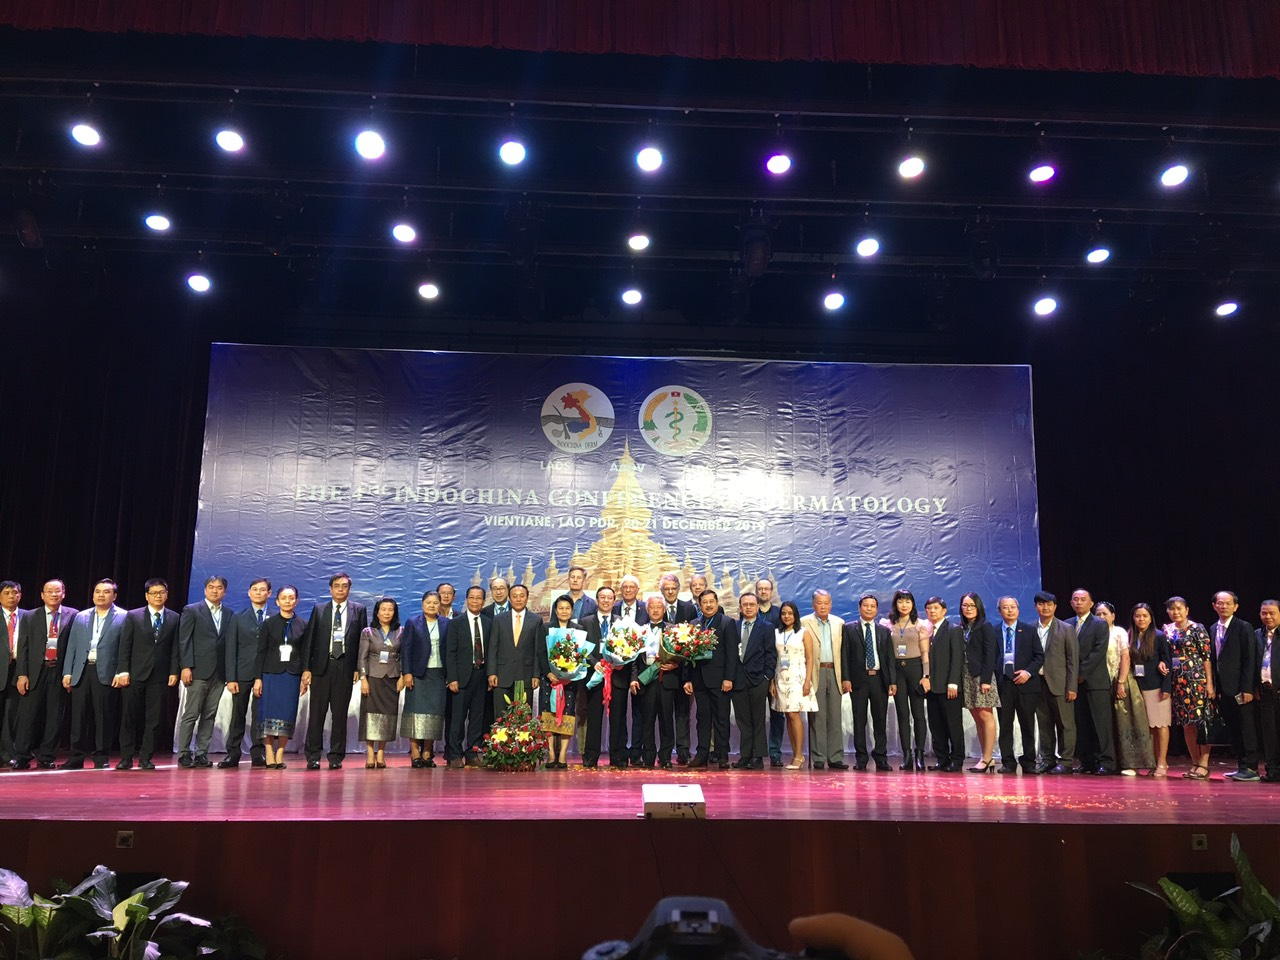 THE 4th INDOCHINA DERMATOLOGY MEETING